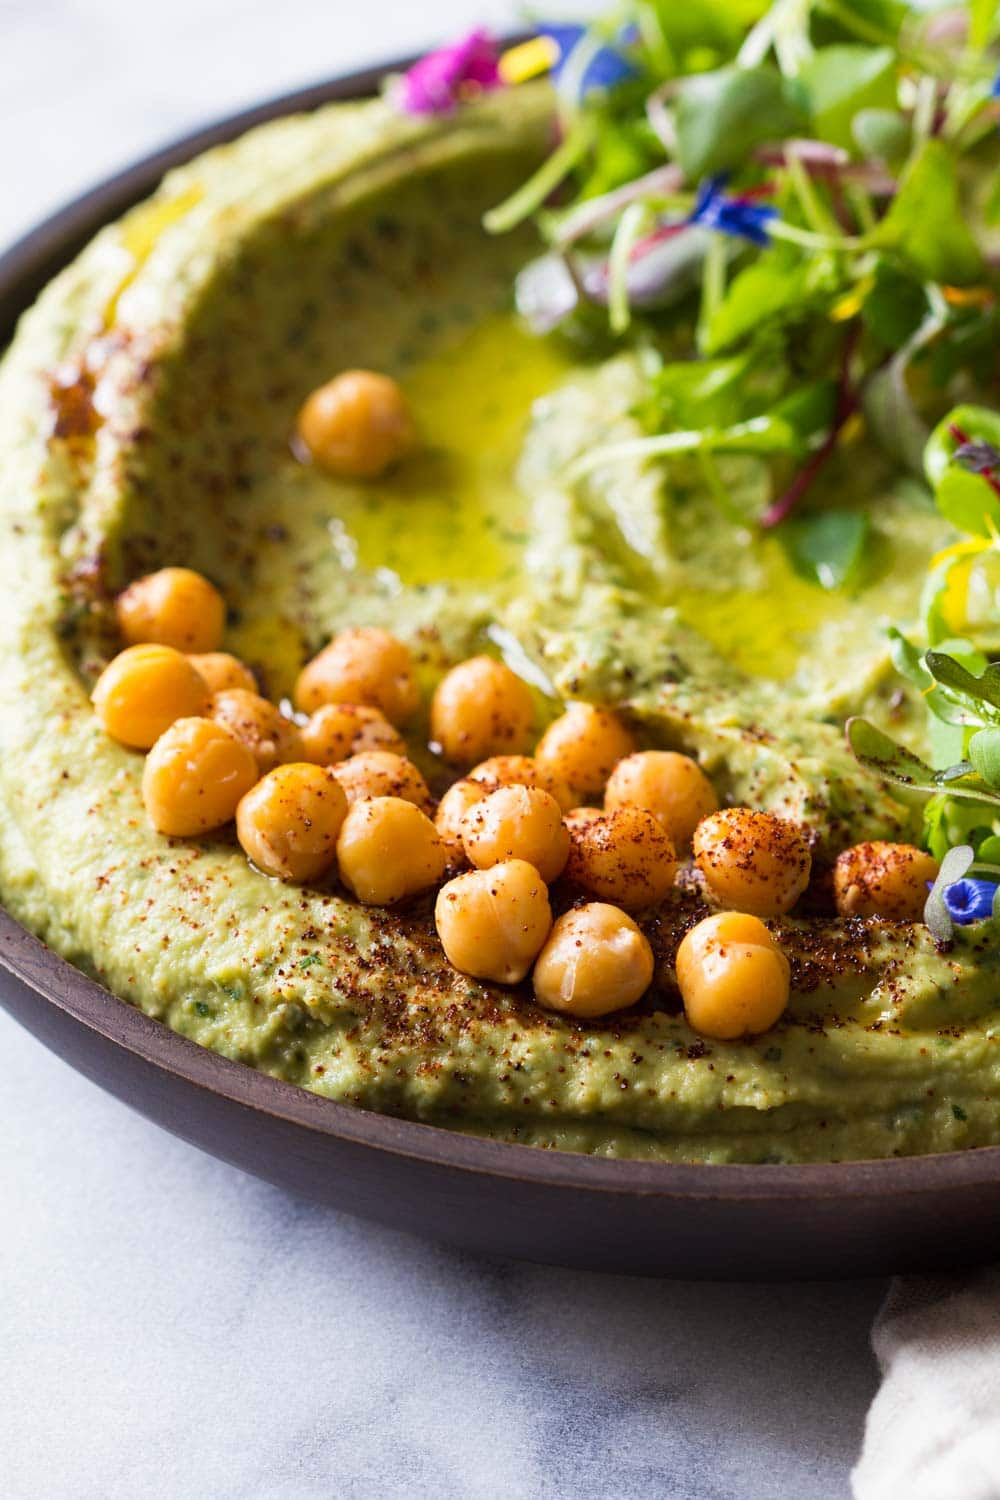 Spicy hummus and avocado presented in a bowl with whole chickpeas and lettuce leaves, sprinkled with chili powder.